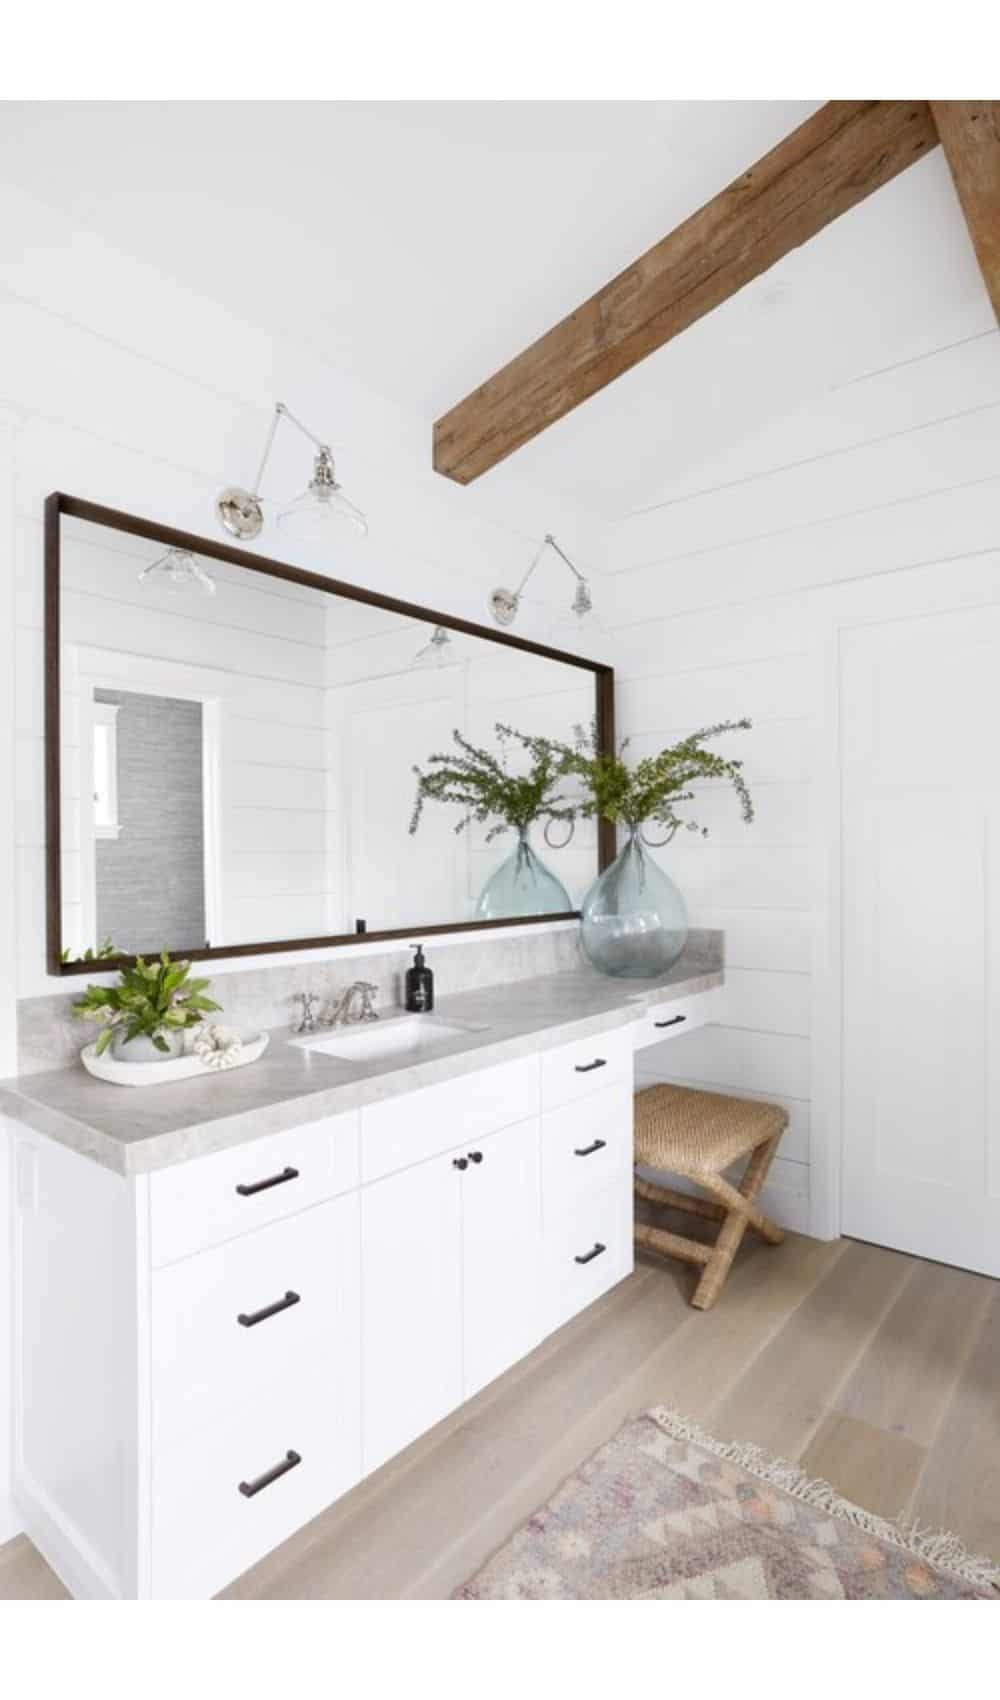 Calm Master Bathroom - Gray and white bathroom vanity with coastal accents